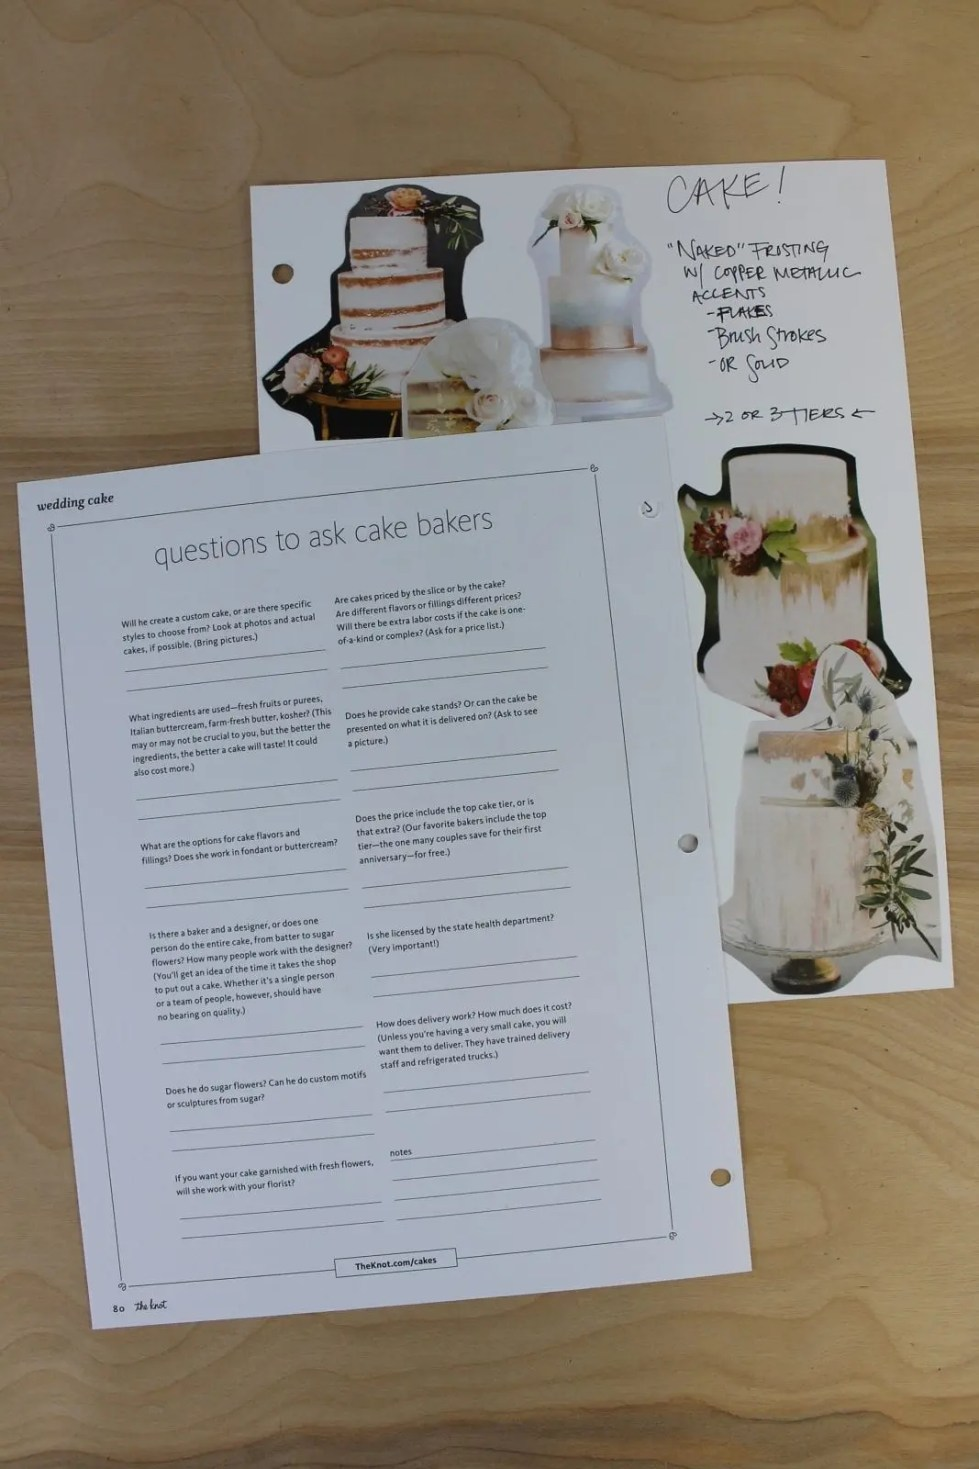 The Knot's Wedding Planner- suggested questions